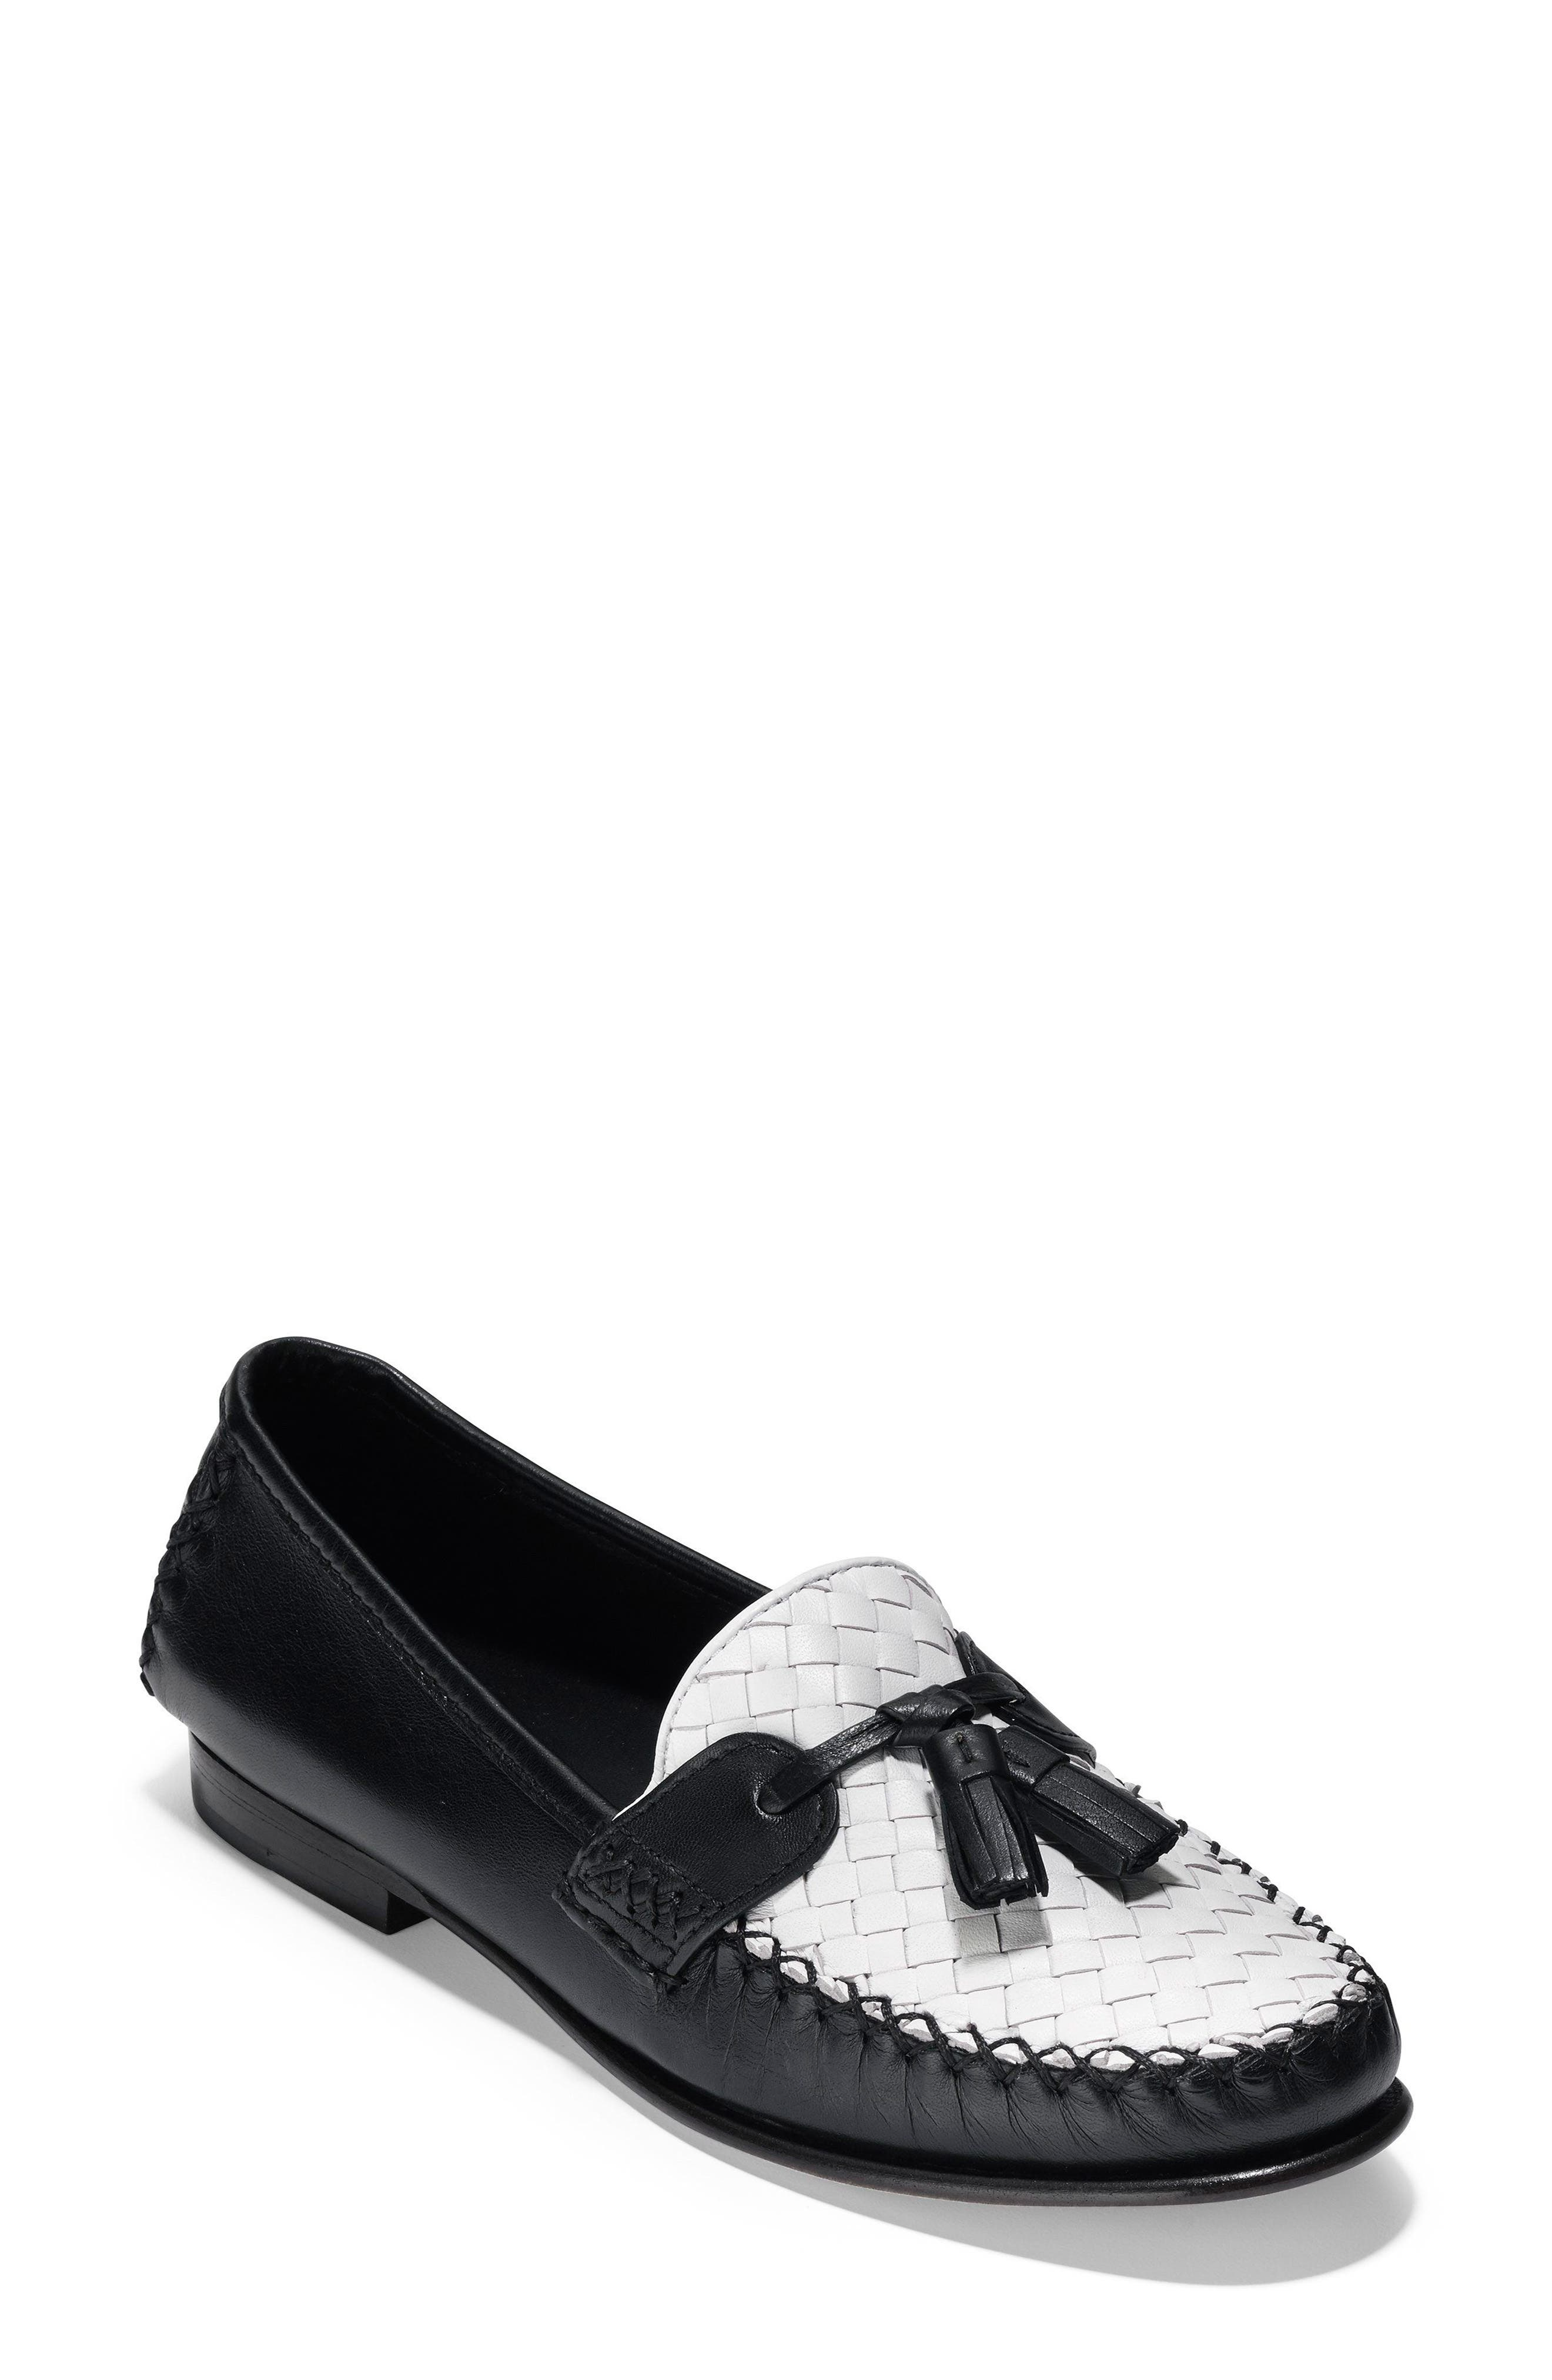 Jagger Loafer,                             Main thumbnail 1, color,                             Black/ White Leather